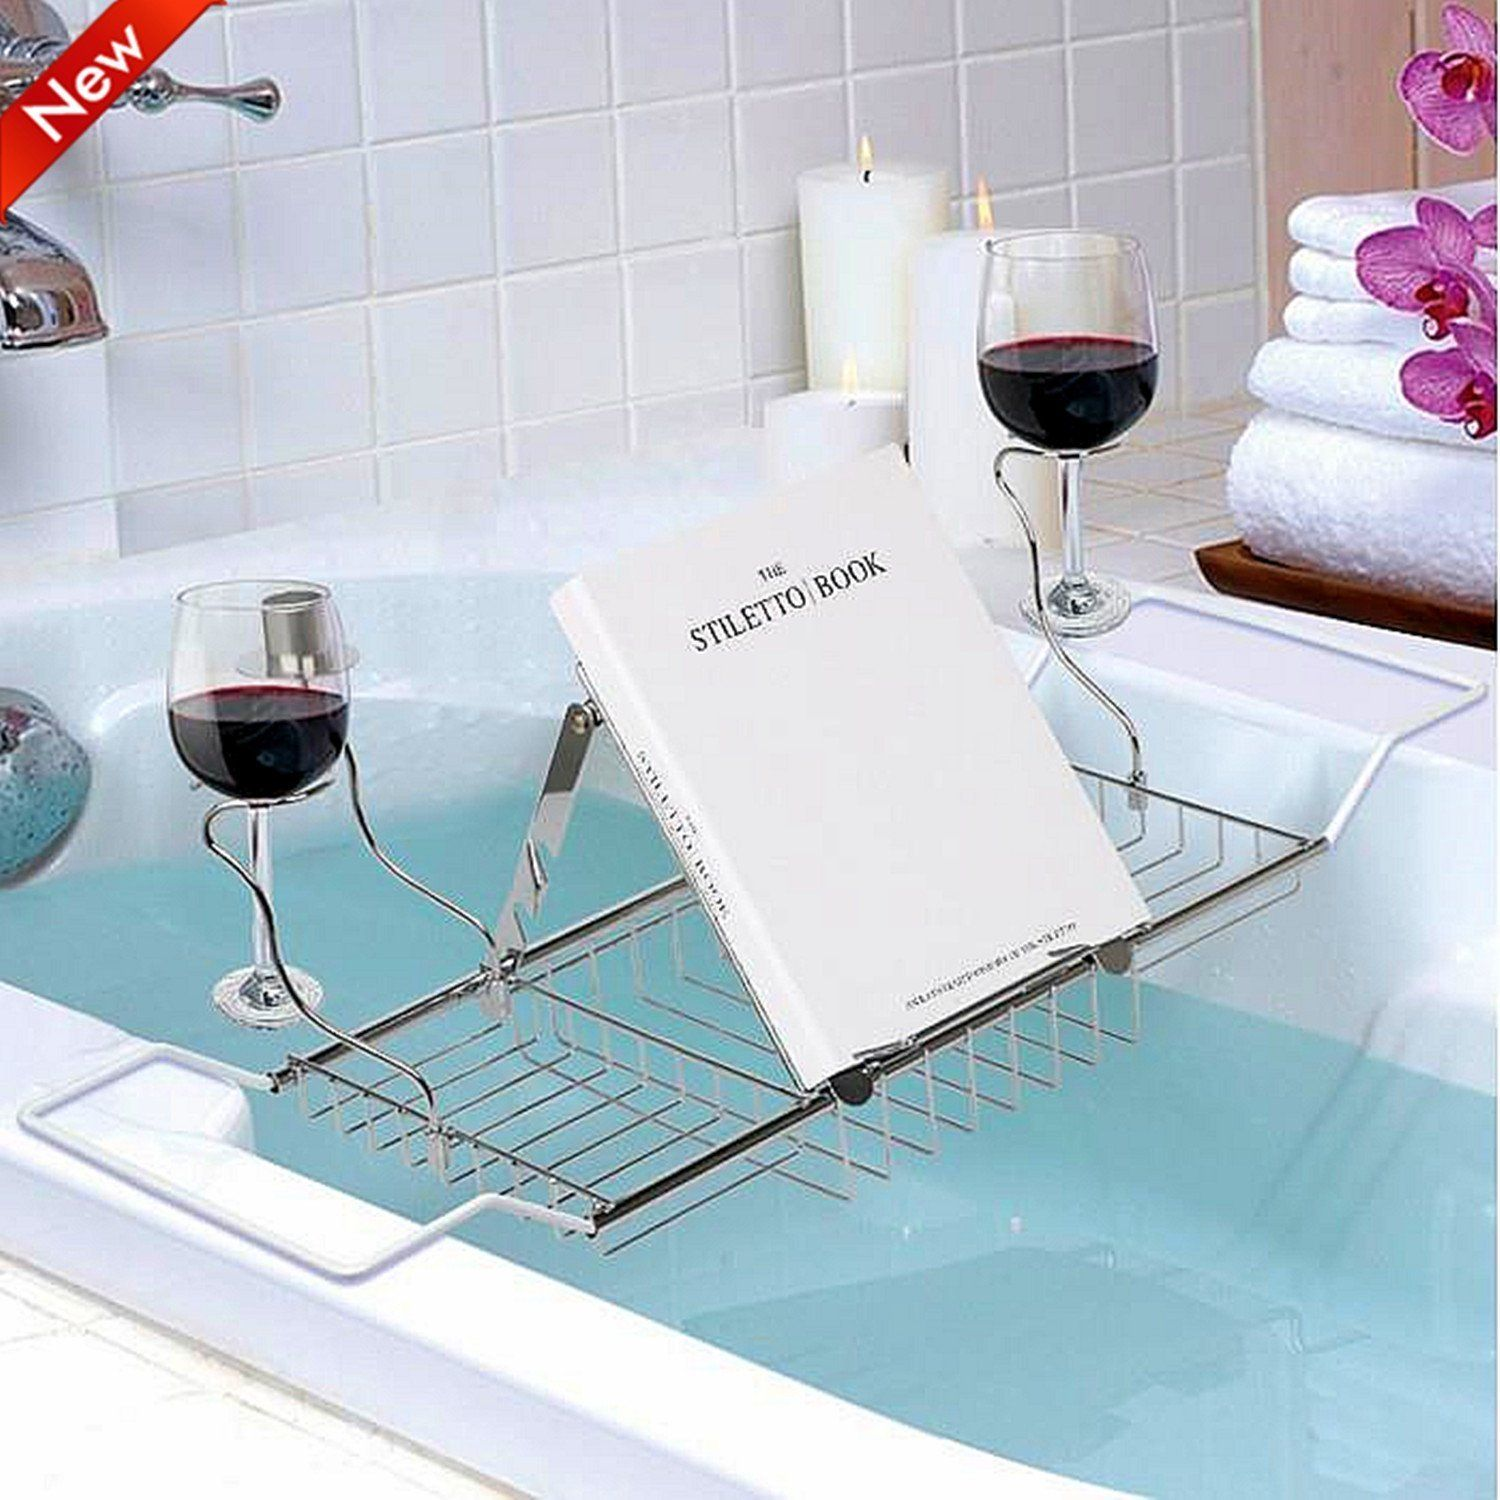 Extendable Over Bath Tub Racks with Wine/Book/Candle Holder | home ...